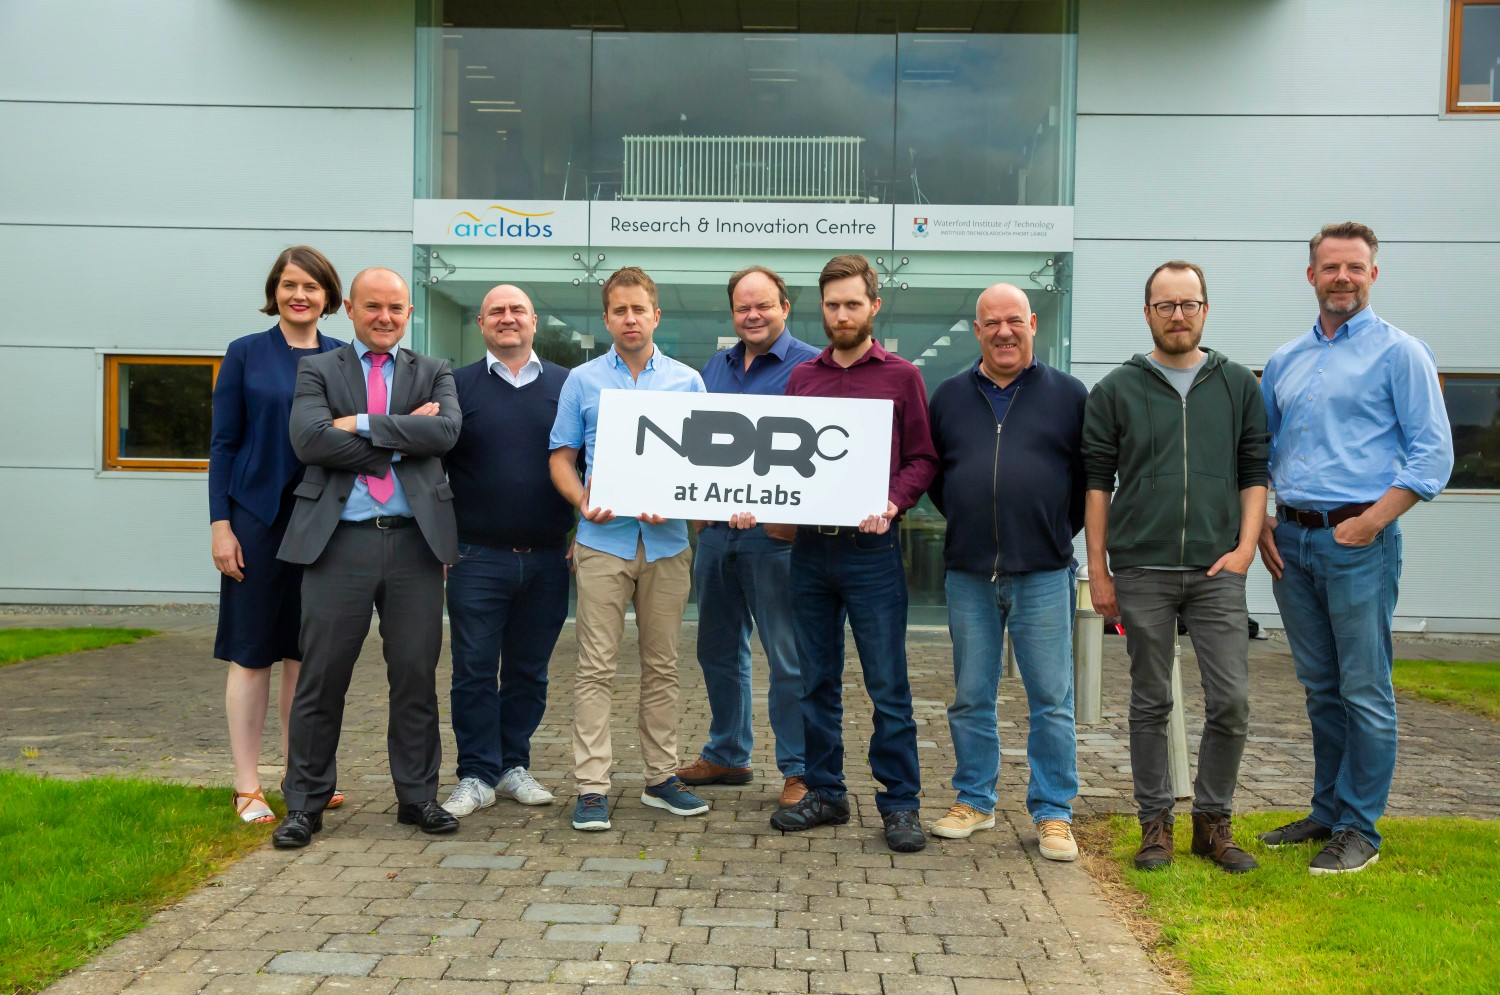 From left: Aisling O'Neill, Manager at ArcLabs; Feargal Duignan, PacSana; Alex Martin, Miura; David Hogan, Smartflow; Aidan Foley and Samuele Santi, Raceix; Fergal Dearle, Stackolater; Rob Ross, Hippo; Niall Larkin, NDRC. Image: Patrick Browne/Brownes Photography